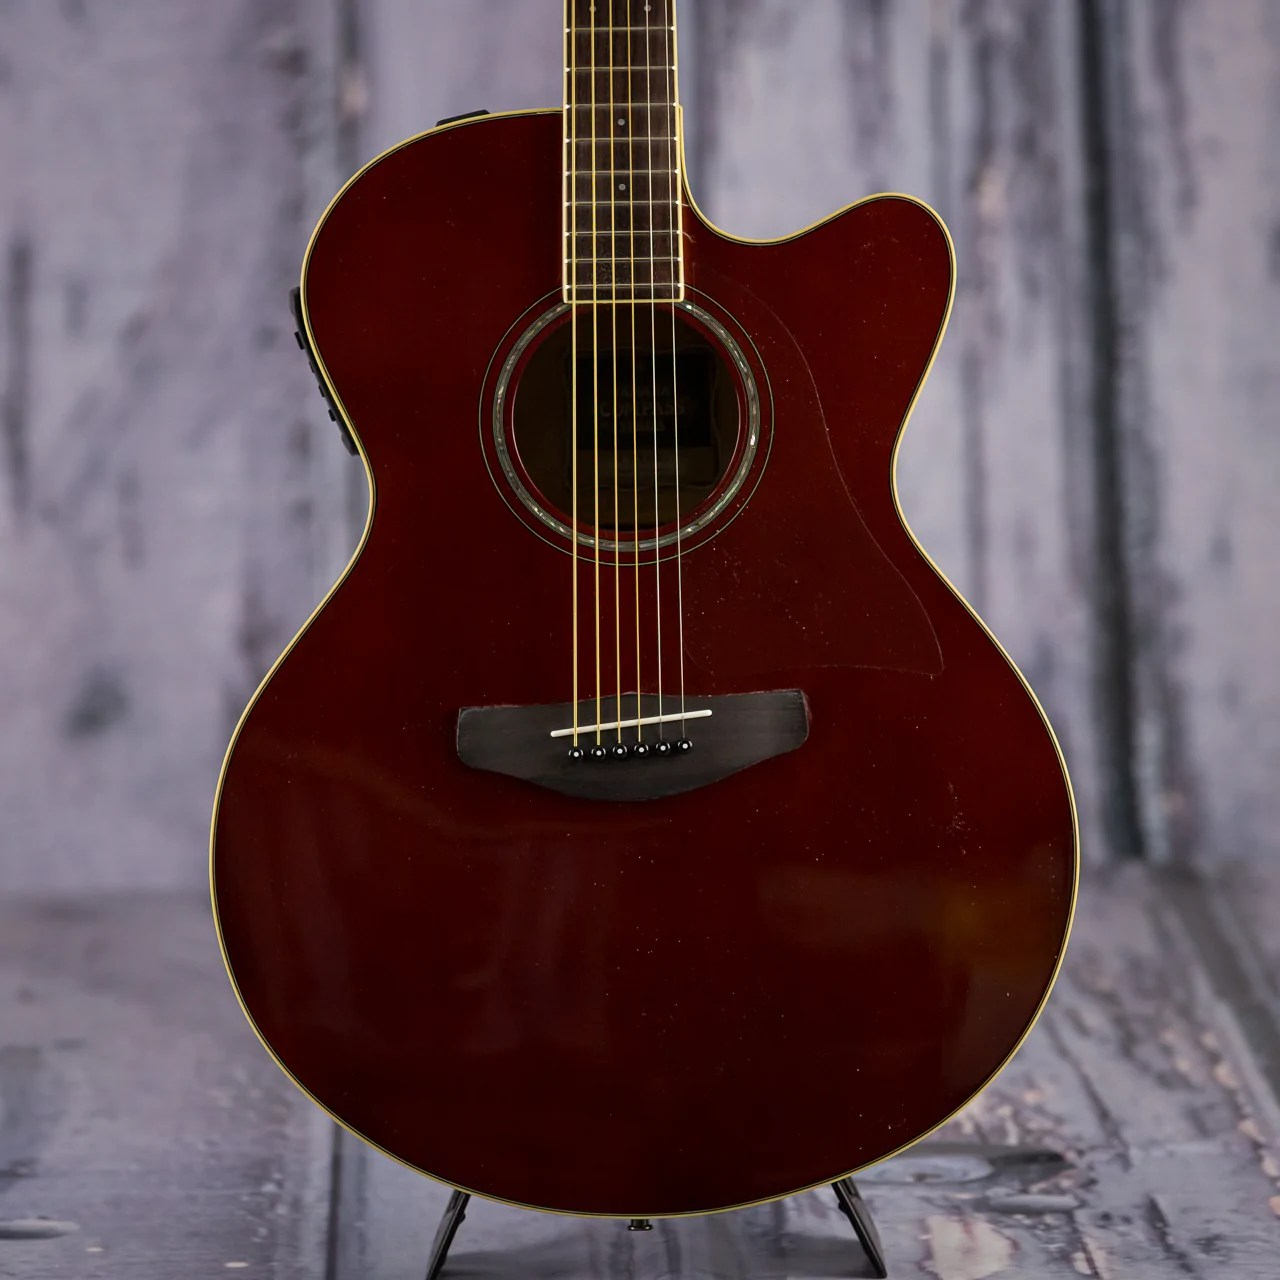 Acoustic Yamaha Yamaha Cpx600 Rb Acoustic Electric Guitar Root Beer Red For Sale